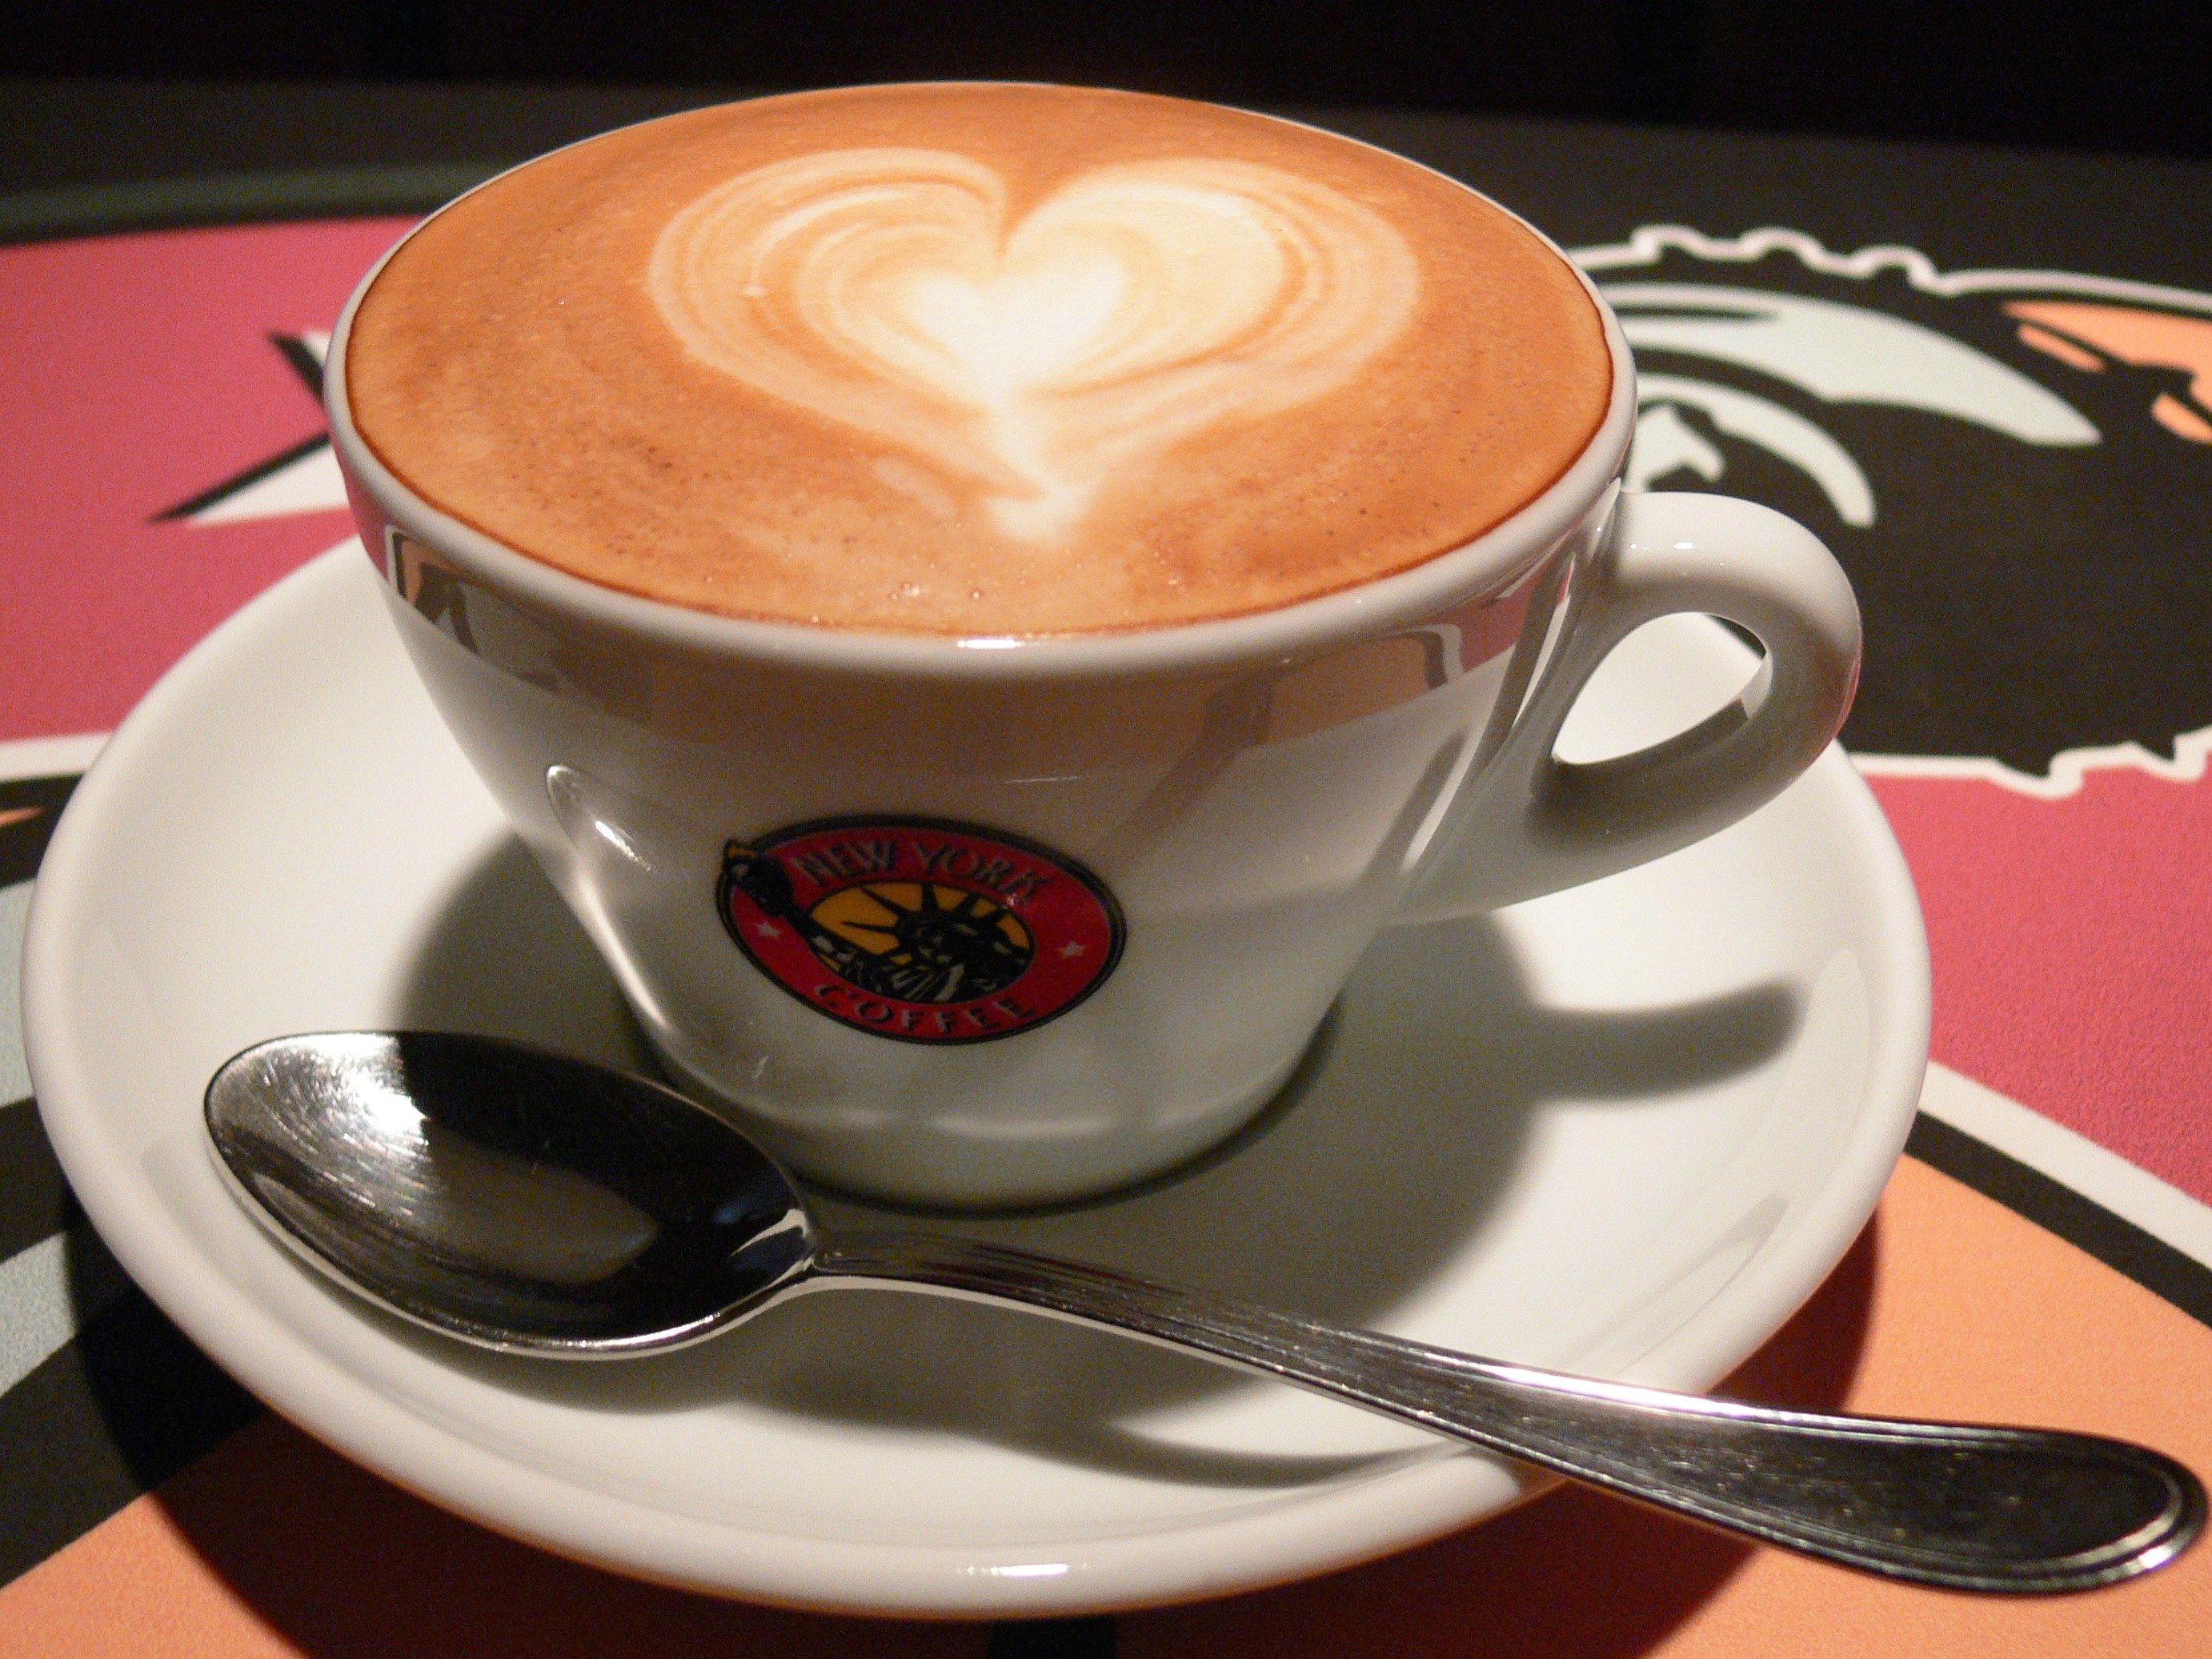 http://upload.wikimedia.org/wikipedia/commons/f/f8/Love_Coffee.jpg